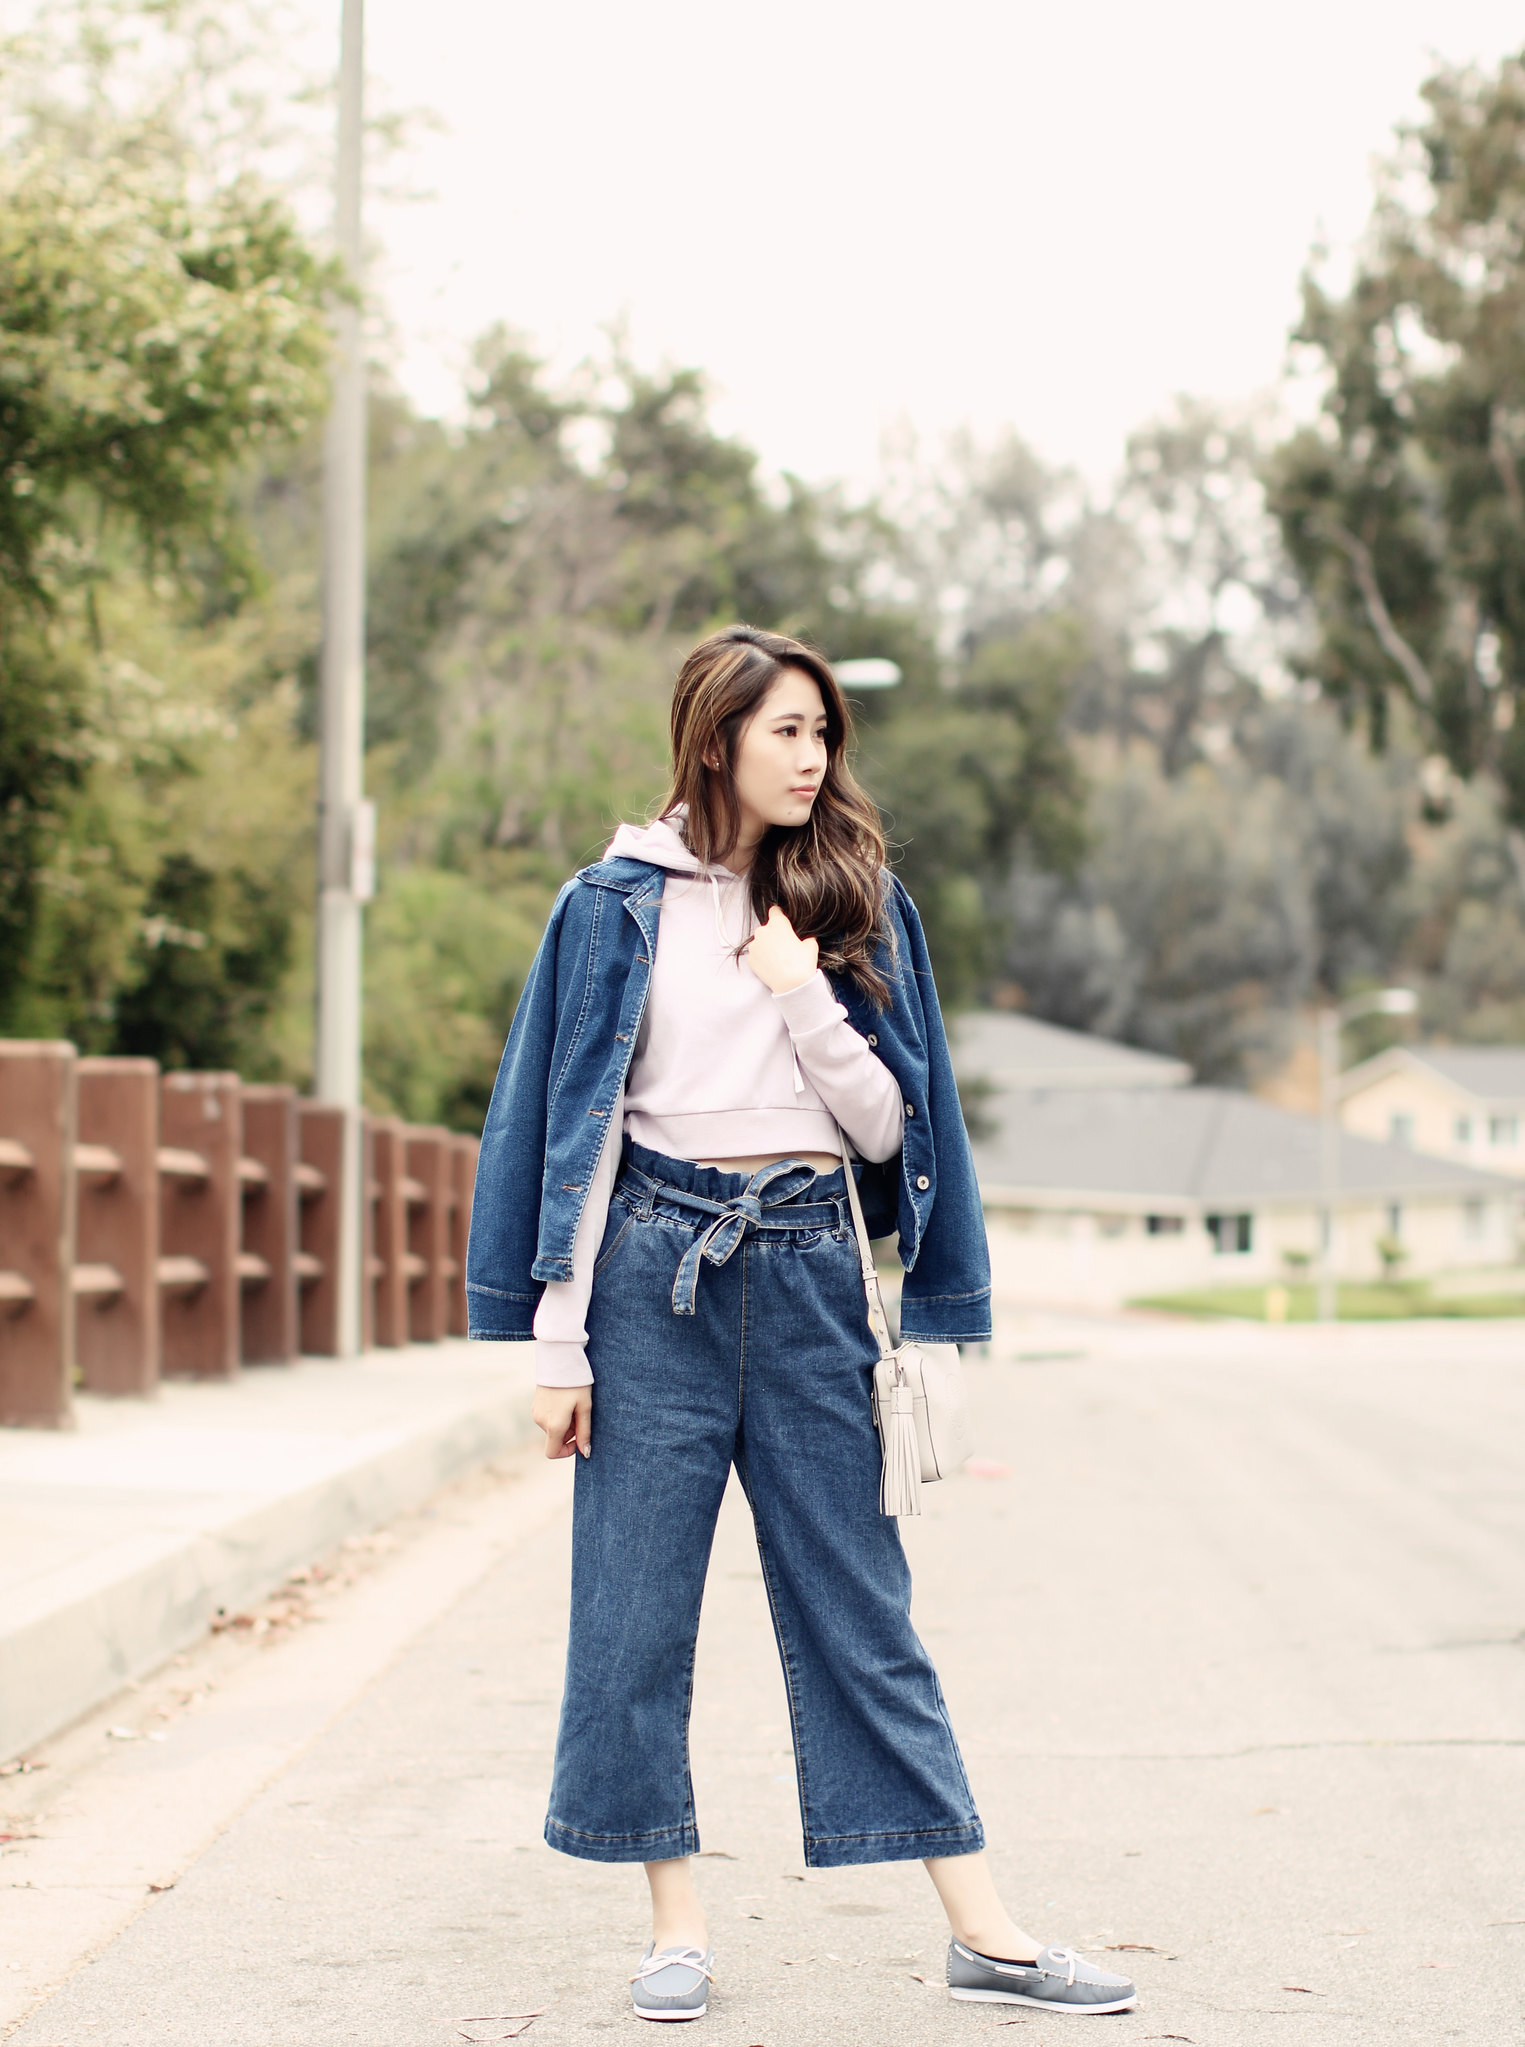 5084-ootd-fashion-style-outfitoftheday-wiwt-streetstyle-zara-f21xme-denim-thrifted-guess-koreanfashion-lookbook-elizabeeetht-clothestoyouuu